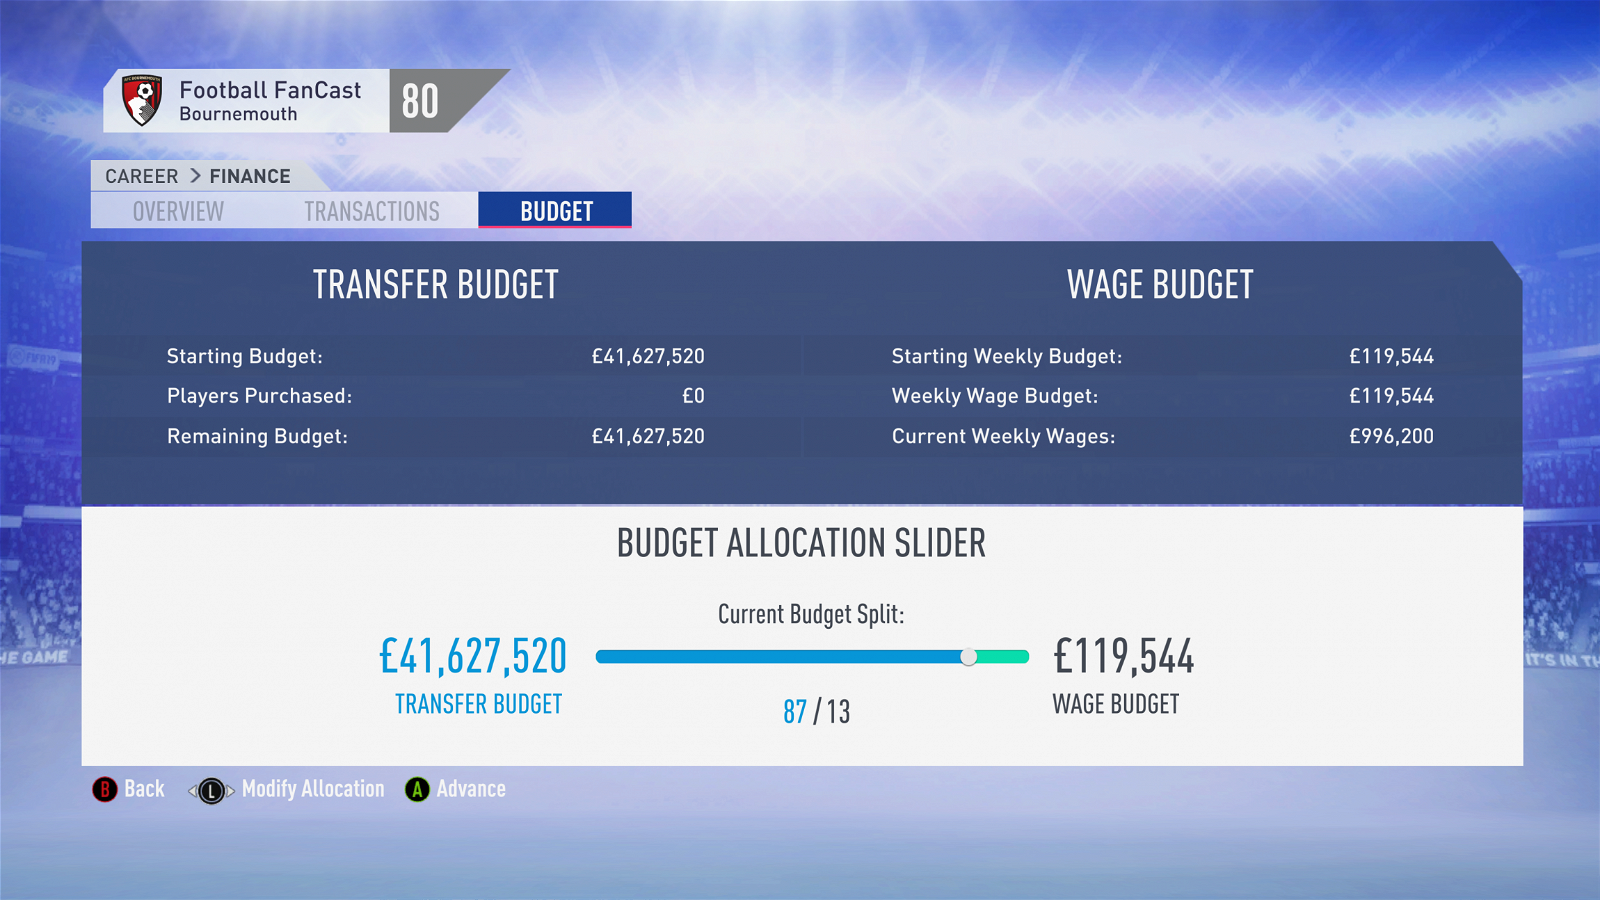 FIFA 19 Career Mode - Bournemouth budget